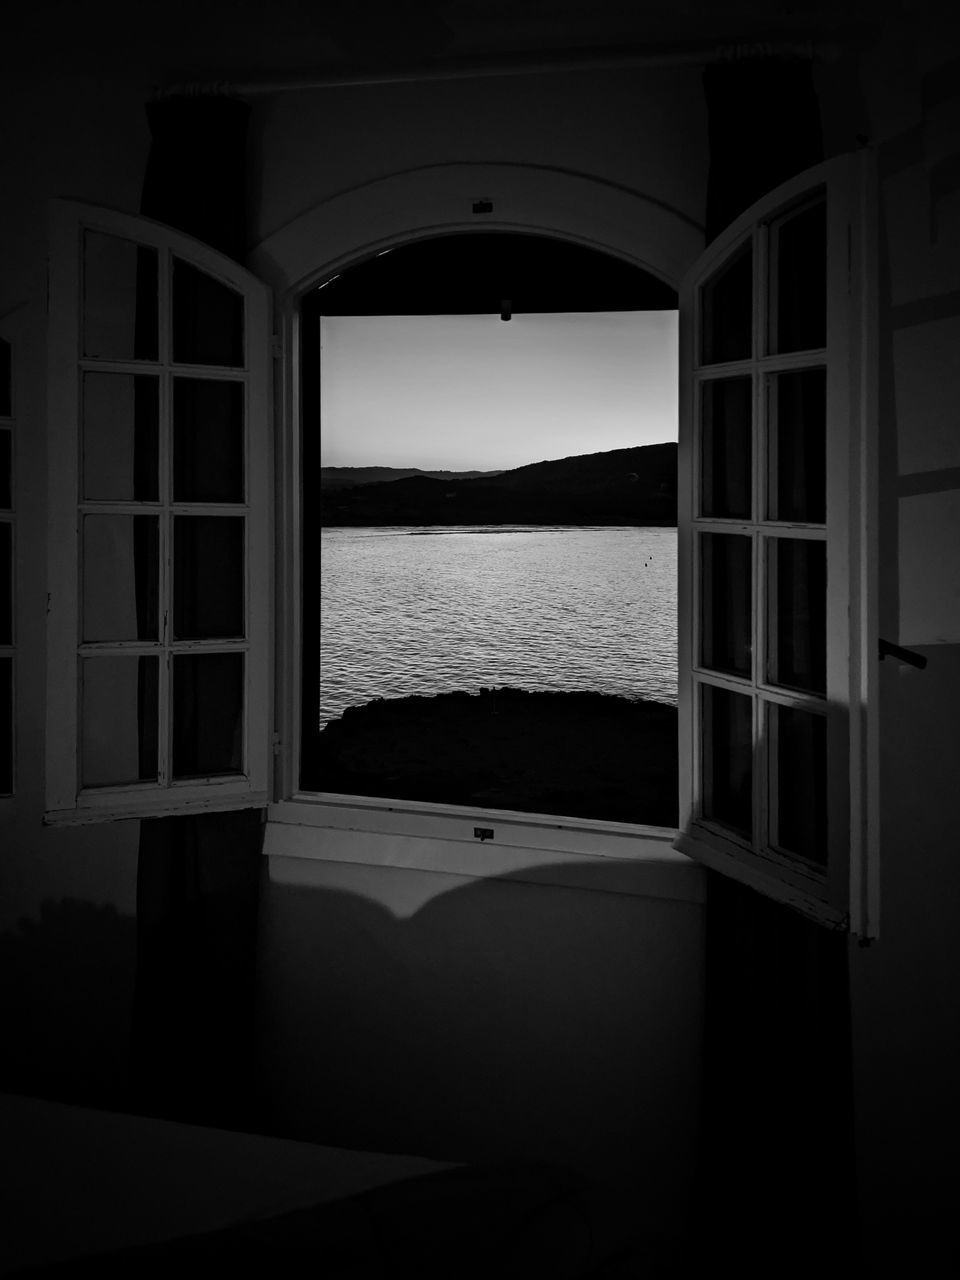 water, window, nature, architecture, no people, indoors, sea, arch, built structure, scenics - nature, sky, day, beauty in nature, open, tranquility, dark, sunlight, entrance